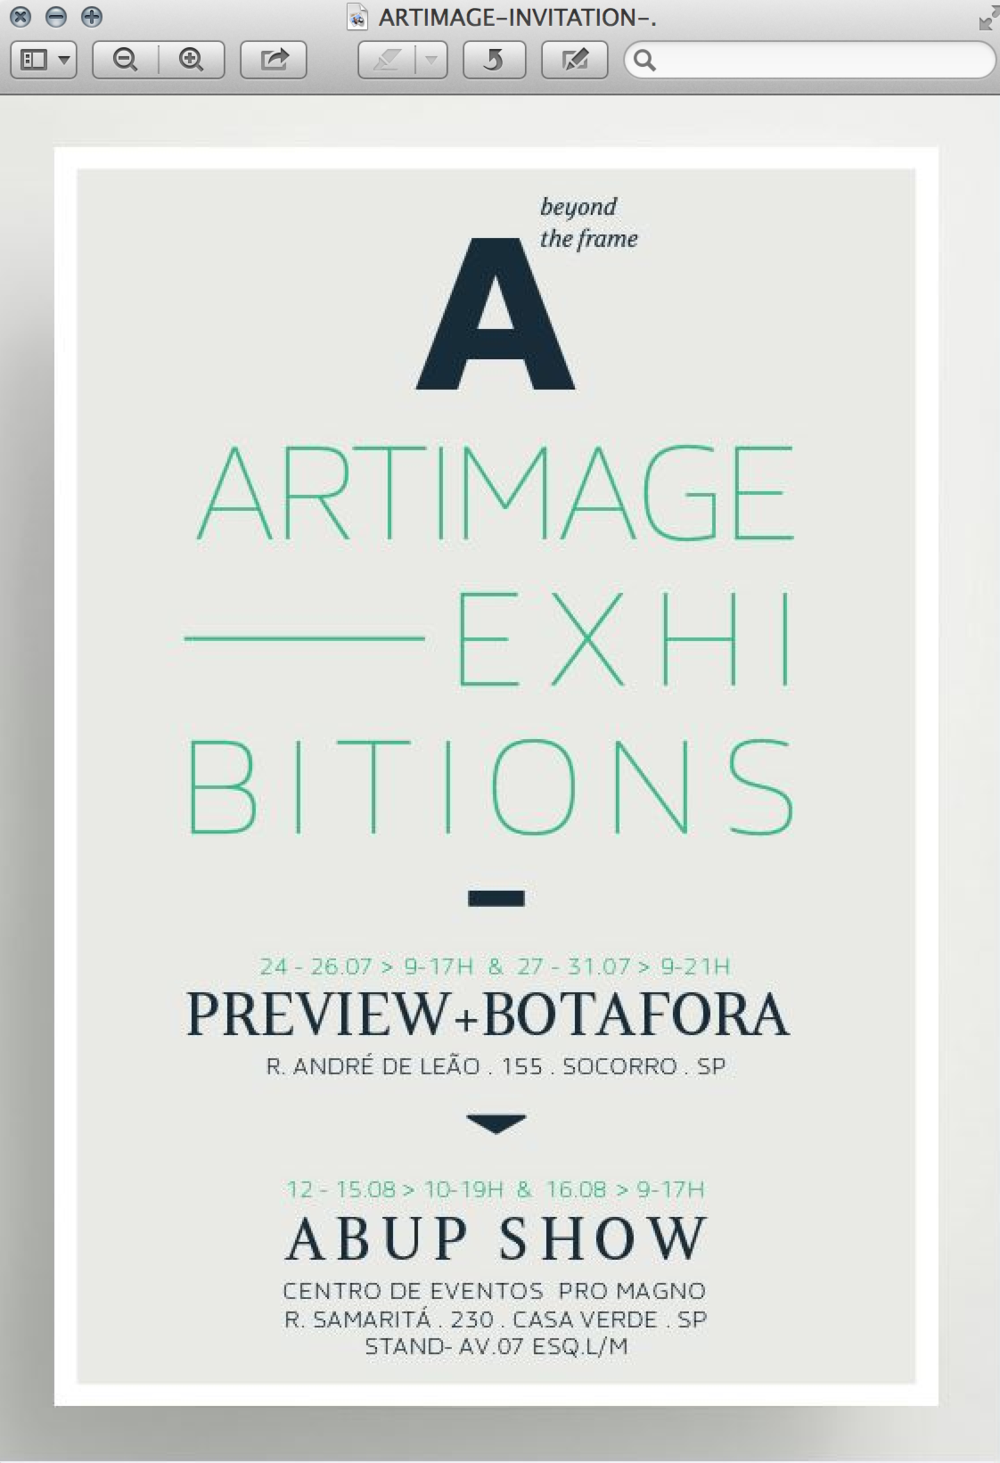 UPCOMING EXHIBITION / Brand new work for ARTIMAGE to be showcased in Sao Paulo this month.